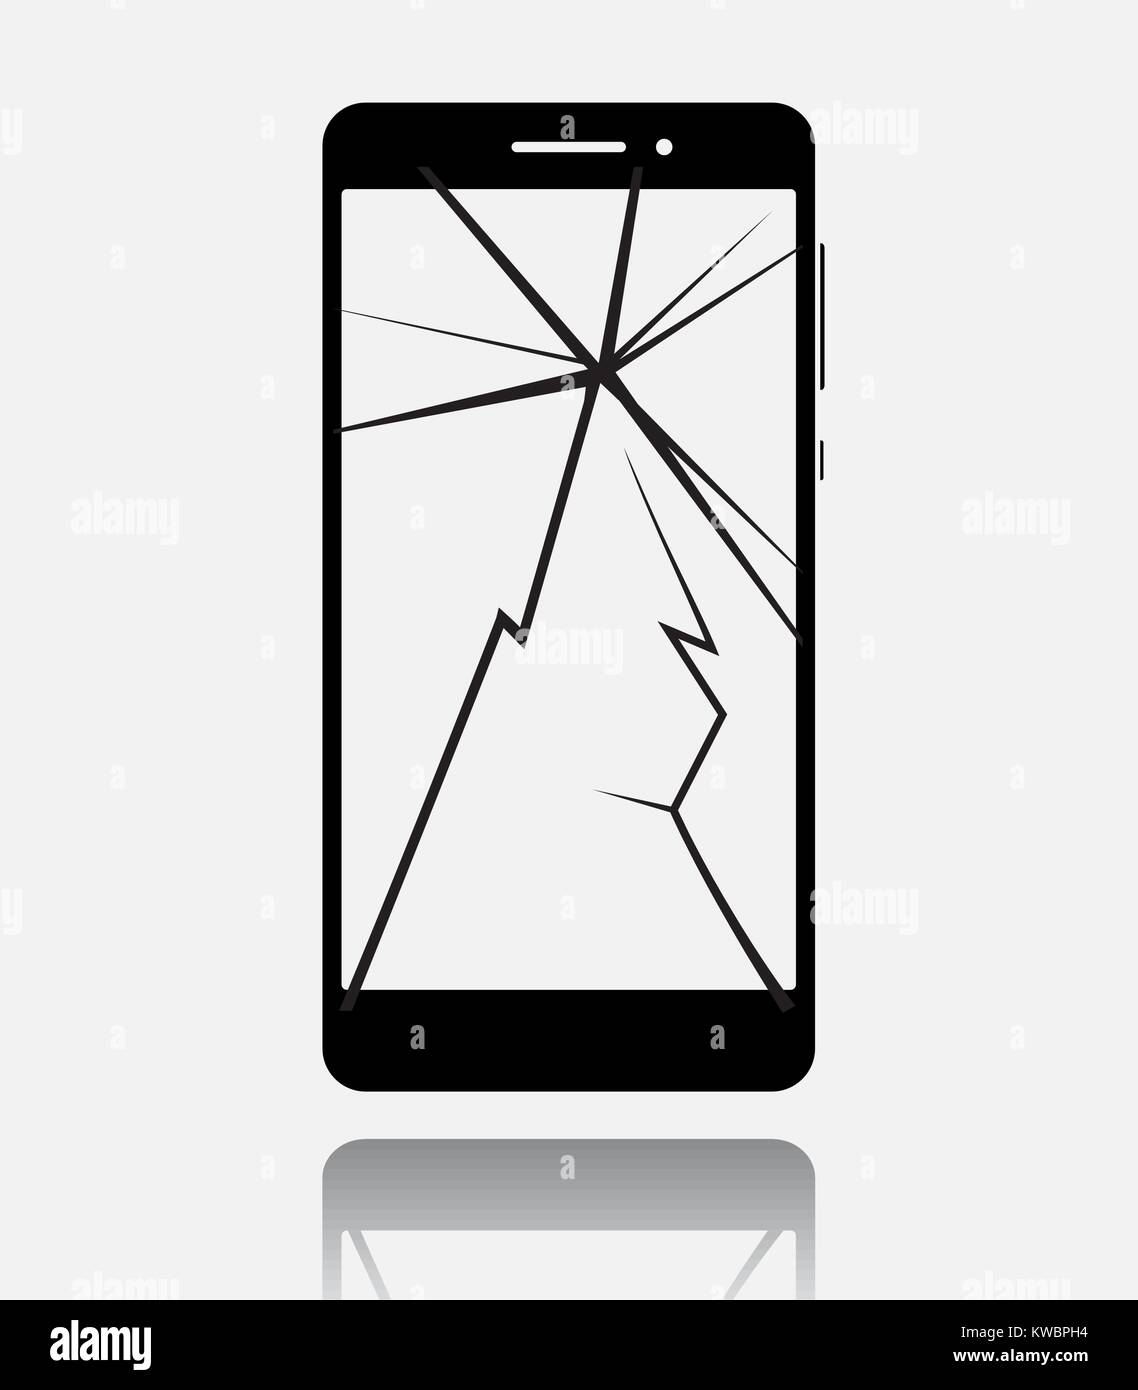 Broken smartphone with cracked touch screen, cell phone flat icon